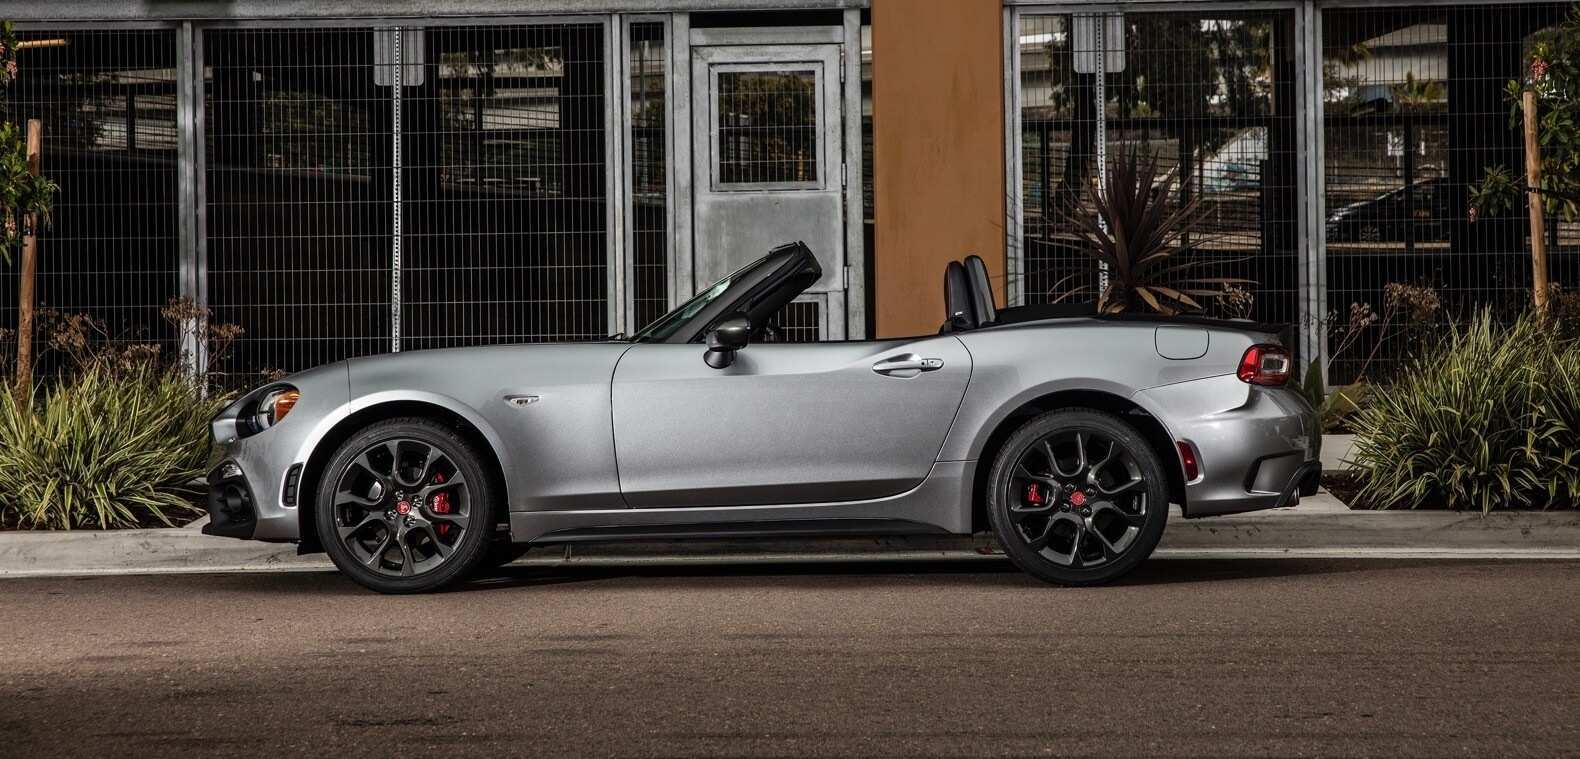 30 New 2020 Fiat Spider Prices